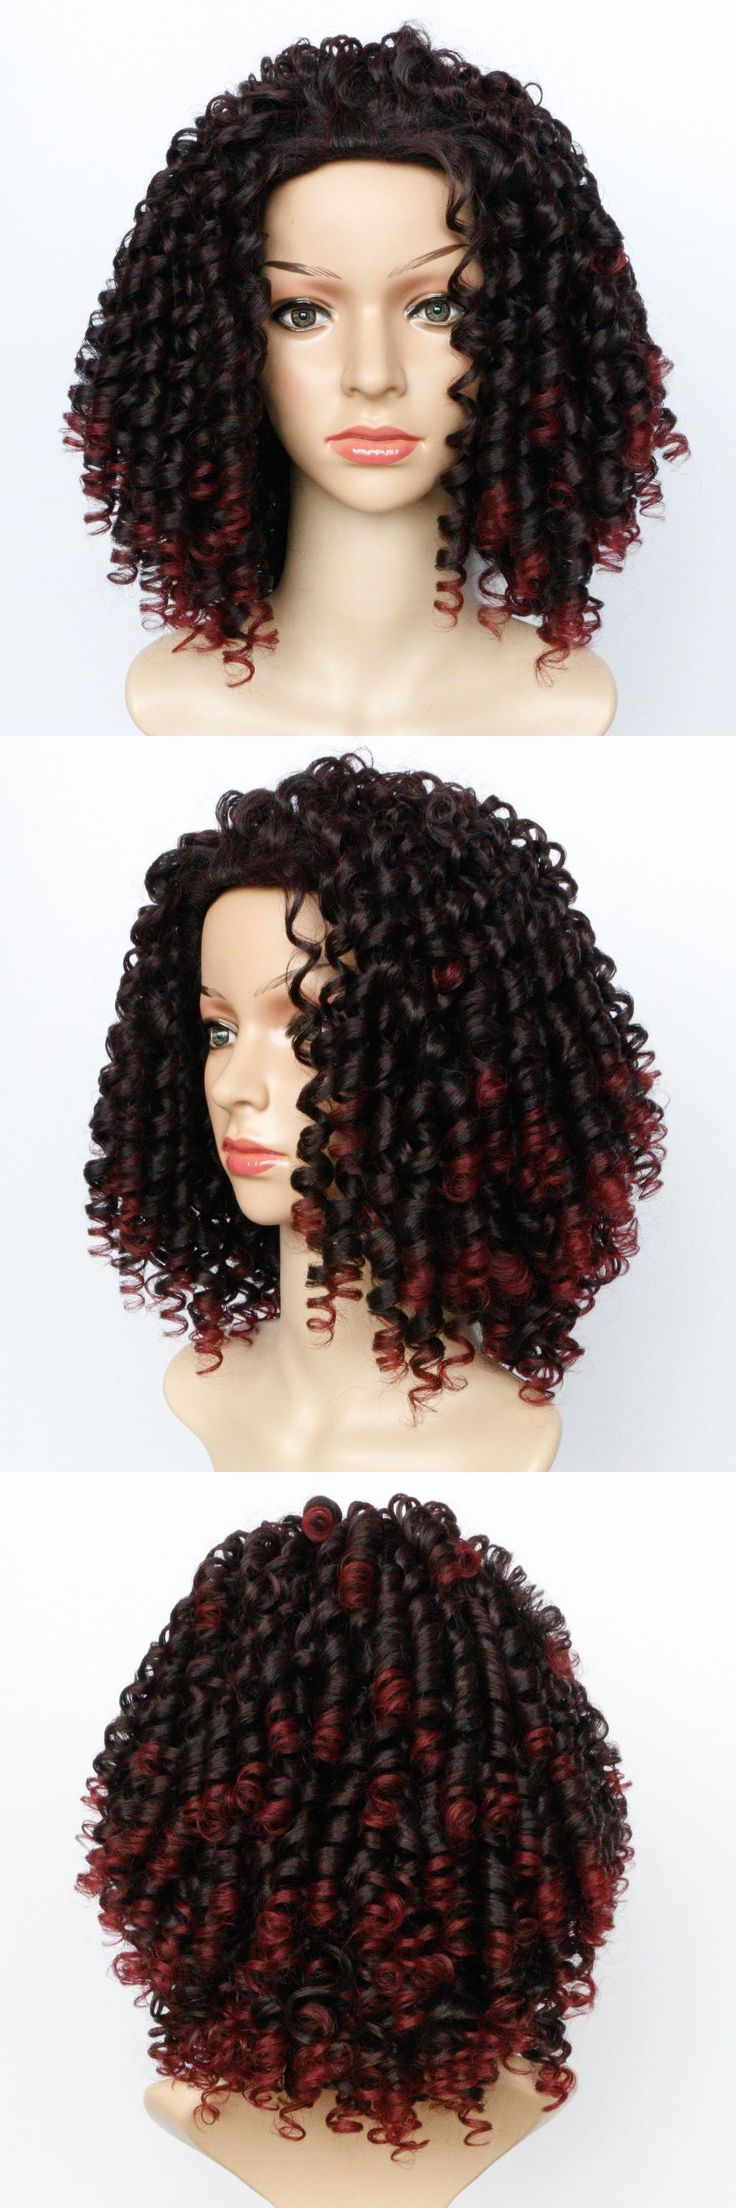 Soloowigs Bouncy Curly Frosted Color Synthetic Afro Wigs 14inch Medium Length Full Lace Hairpieces Puffy hair Style